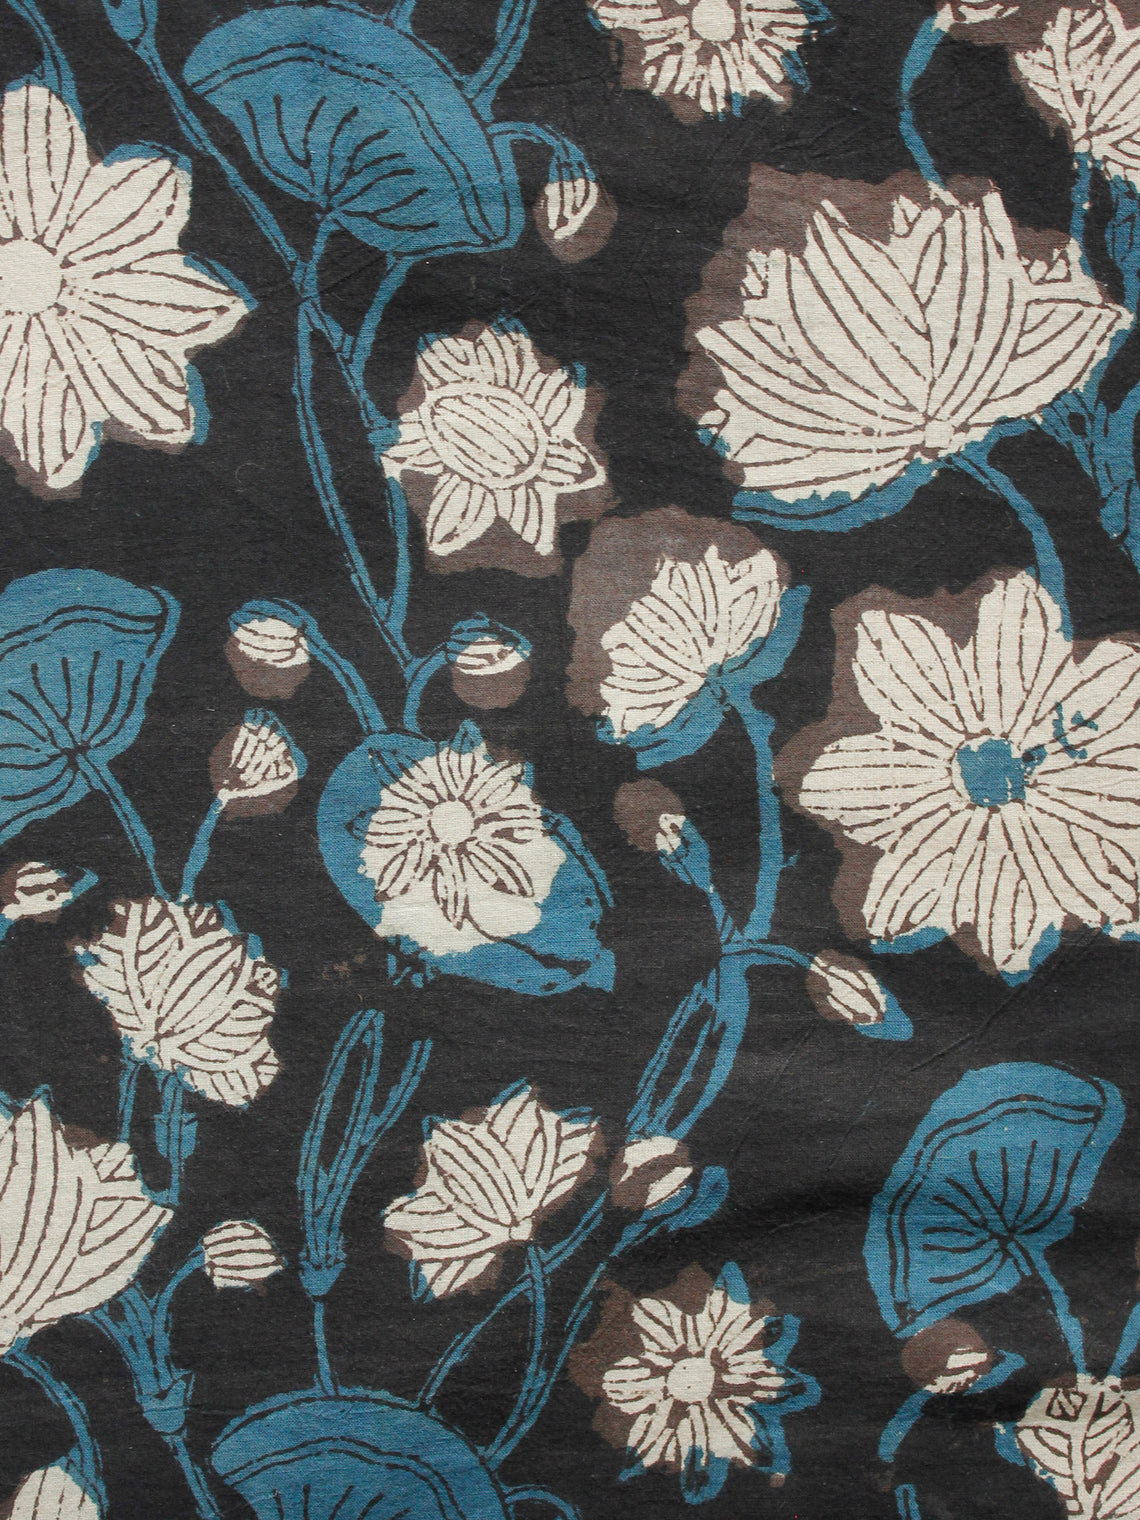 Black Blue Brown Beige Hand Block Printed Cotton Fabric Per Meter - F001F1365